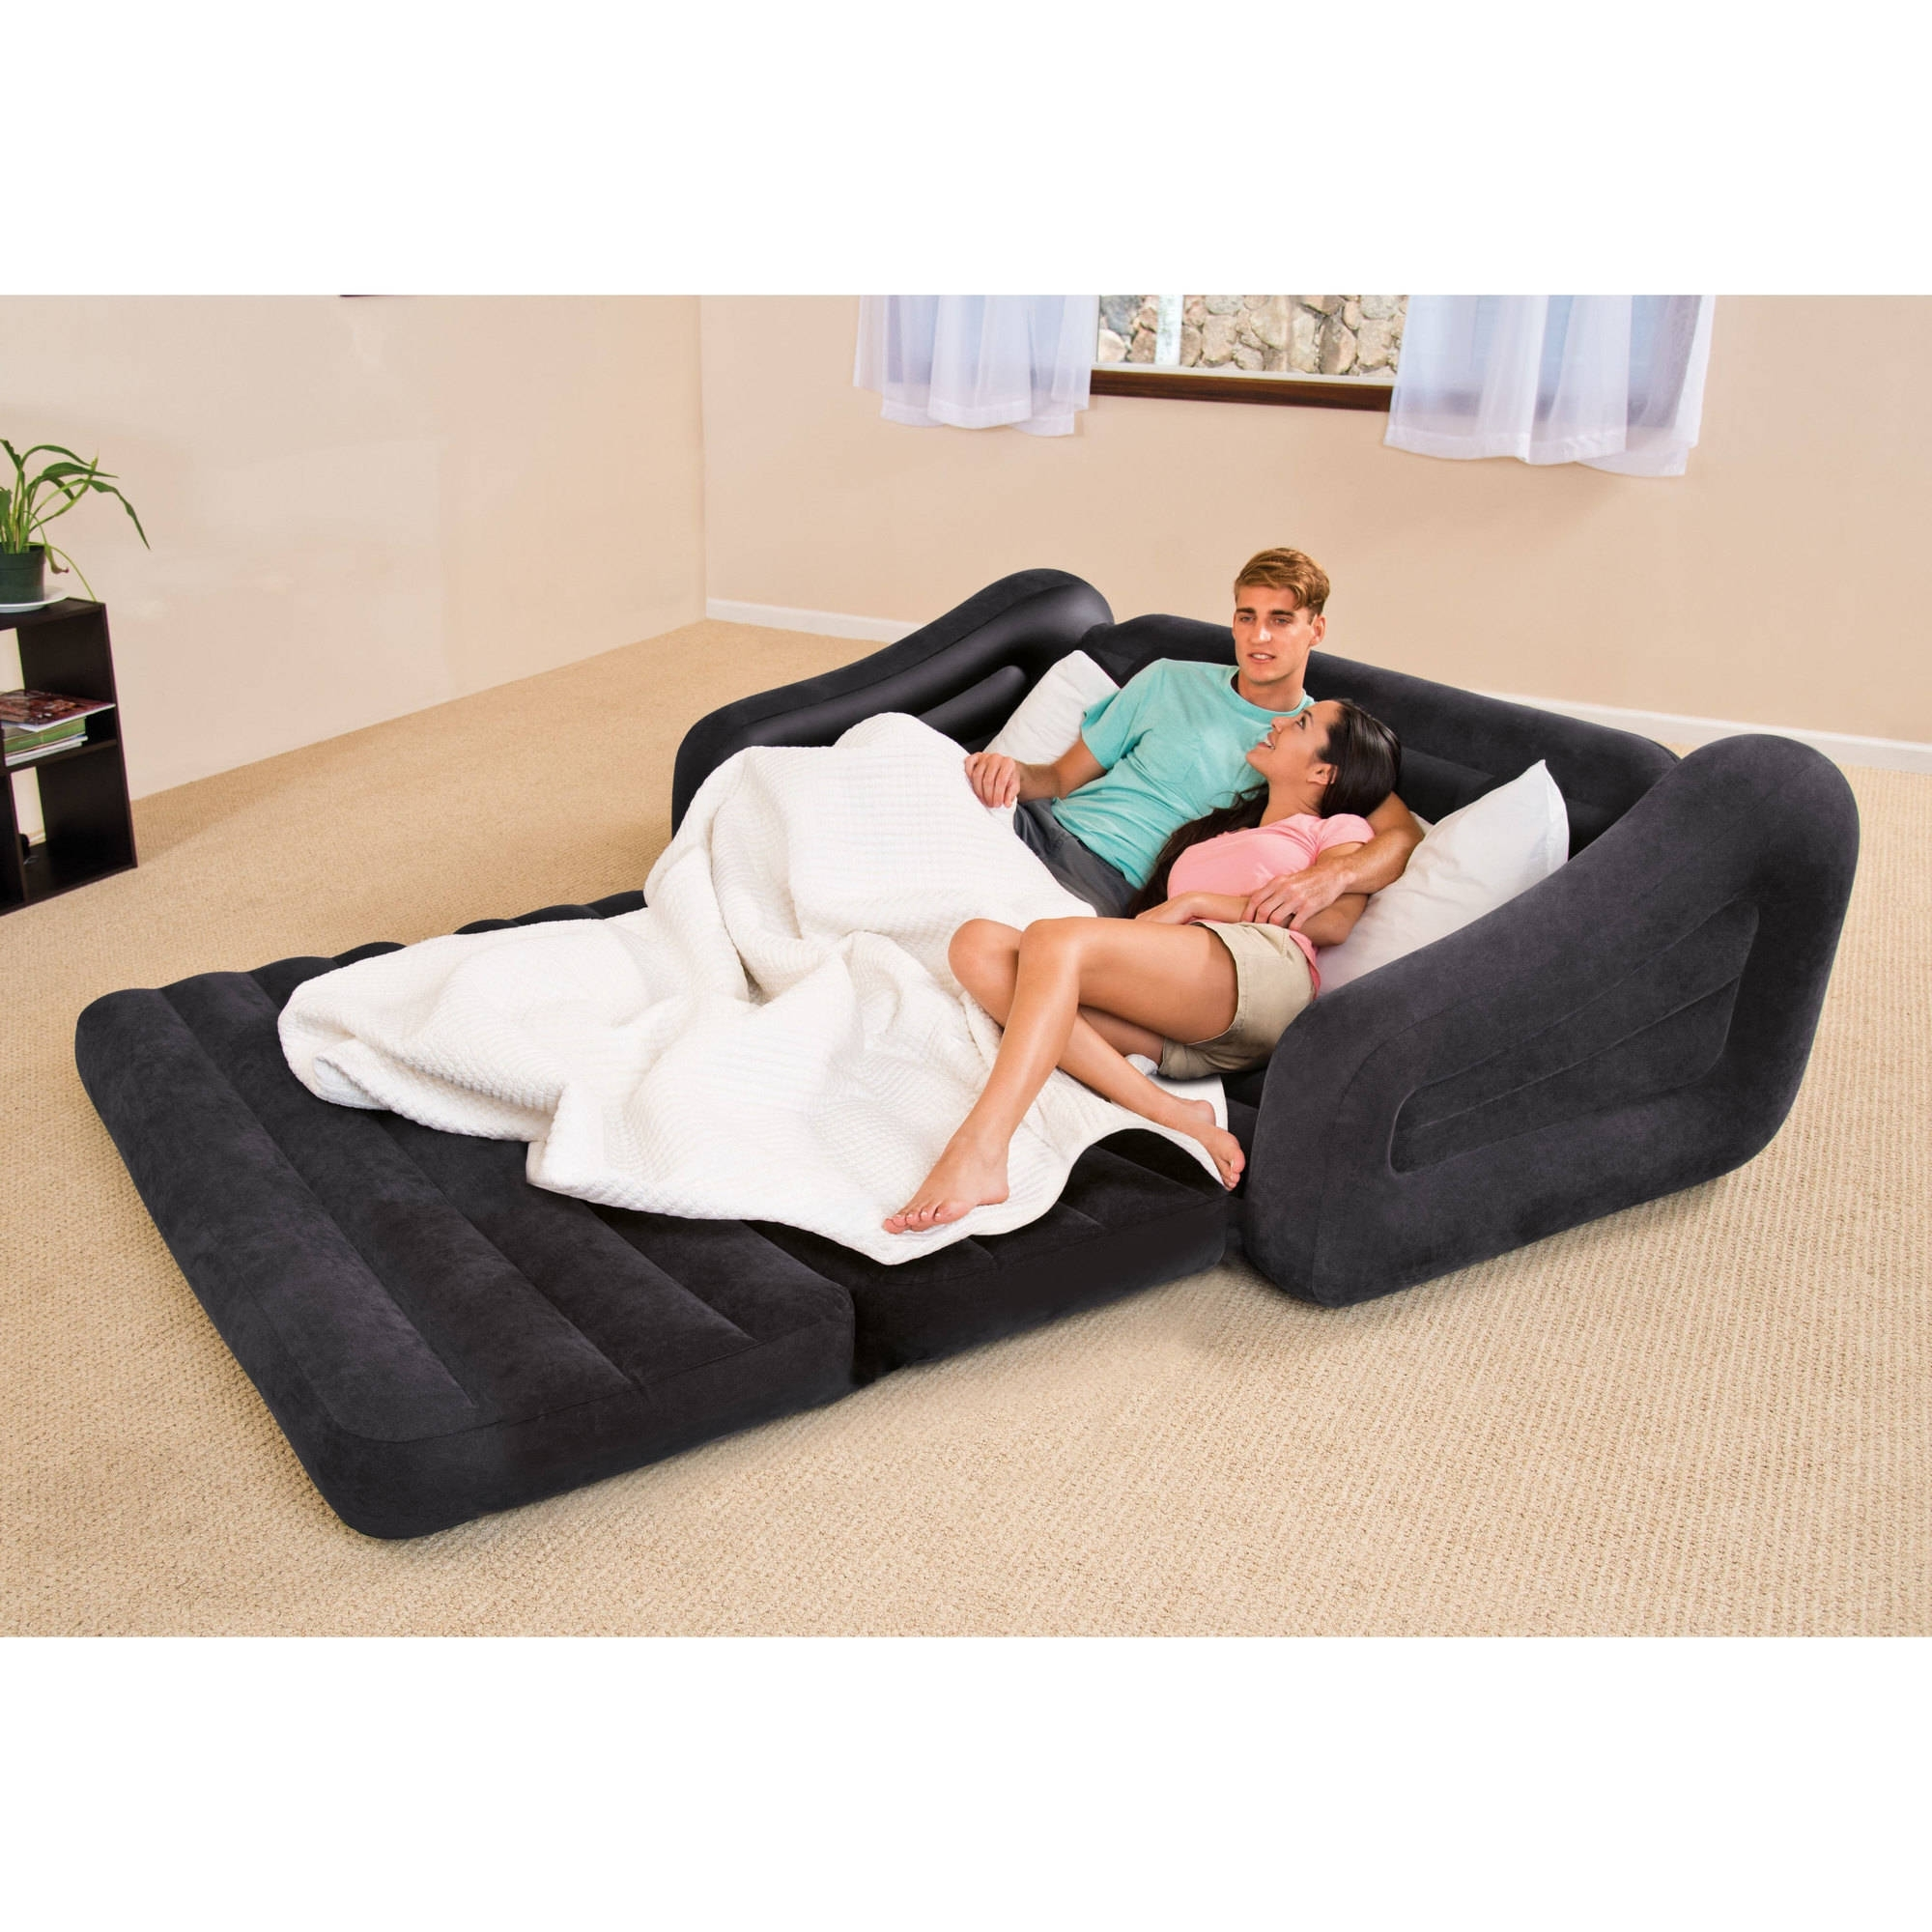 Intex Queen Inflatable Pull Out Sofa Bed – Walmart With Regard To Well Known Queen Size Sofas (View 3 of 20)